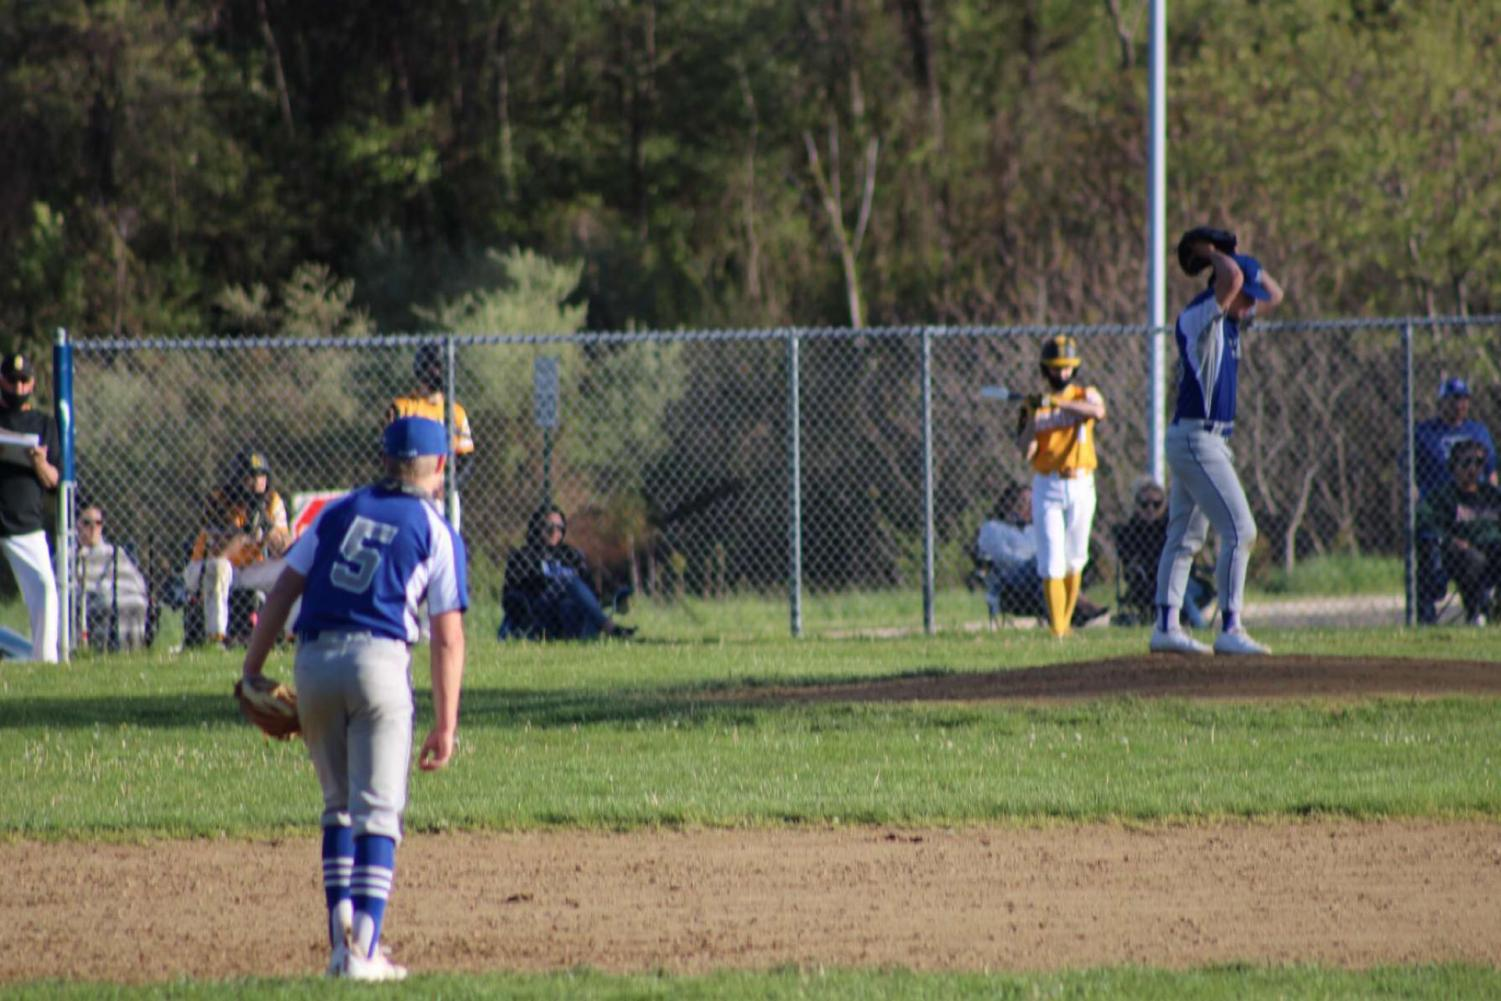 """Pitcher Brandon Hsu '21 mid-windup as Drew Gryniewicz '21 holds down the middle infield. The two seniors had big games, and their contributions helped out a whole team effort as almost every HB player got on base against Souhegan. """"We put hours in everyday this off-season training, and talking about our team and what we need to do as a team to be successful, so it"""